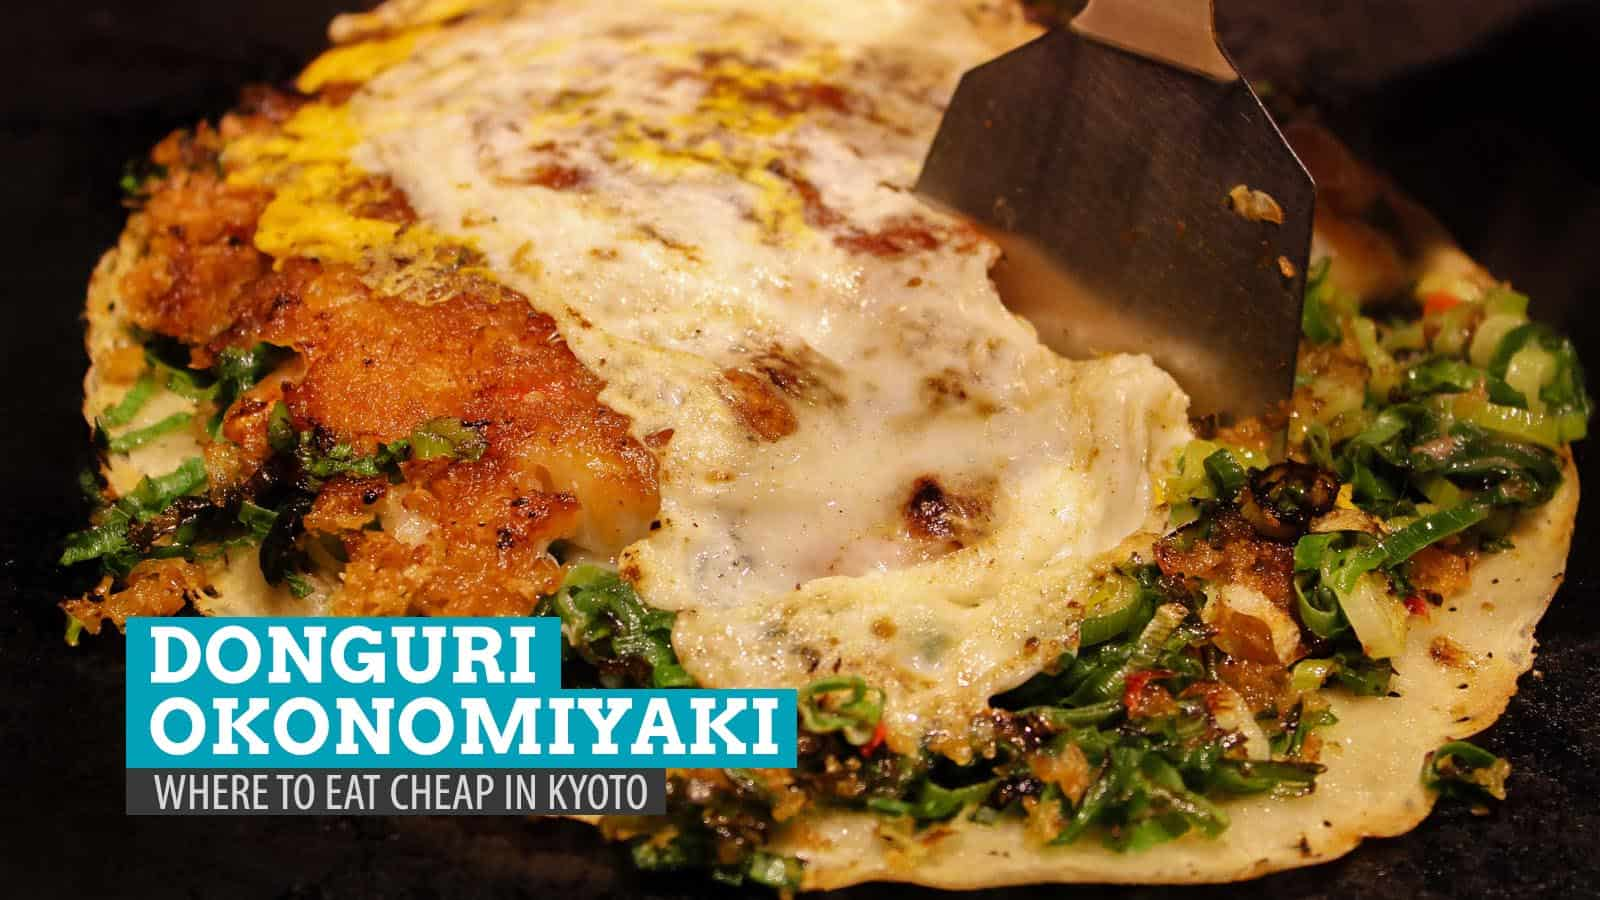 Donguri Okonomiyaki Dining in Kyoto, Japan